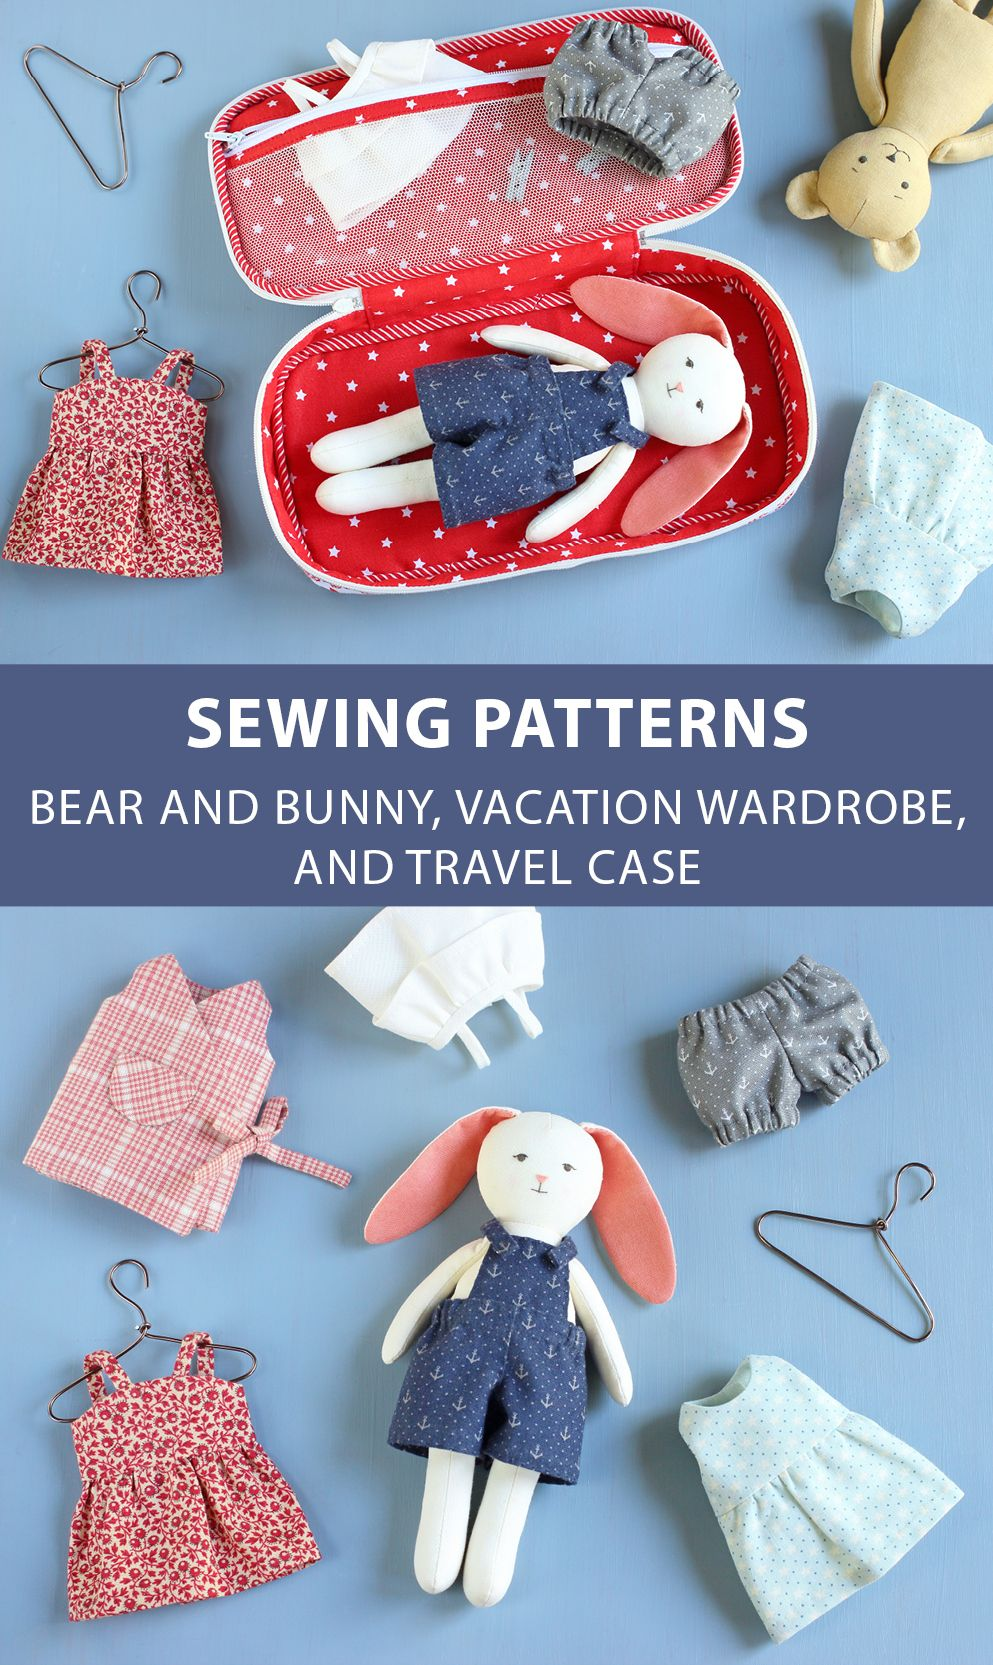 Sewing pattern for a bunny doll. Patterns for the wardrobe and travel case are also available. #etsy #etsyfinds #pattern #sewingpattern #pdfpattern #sew #sewing #sewingproject #diy #doll #bunny #traveltoy #dolls #animaldoll #travelcase #travel